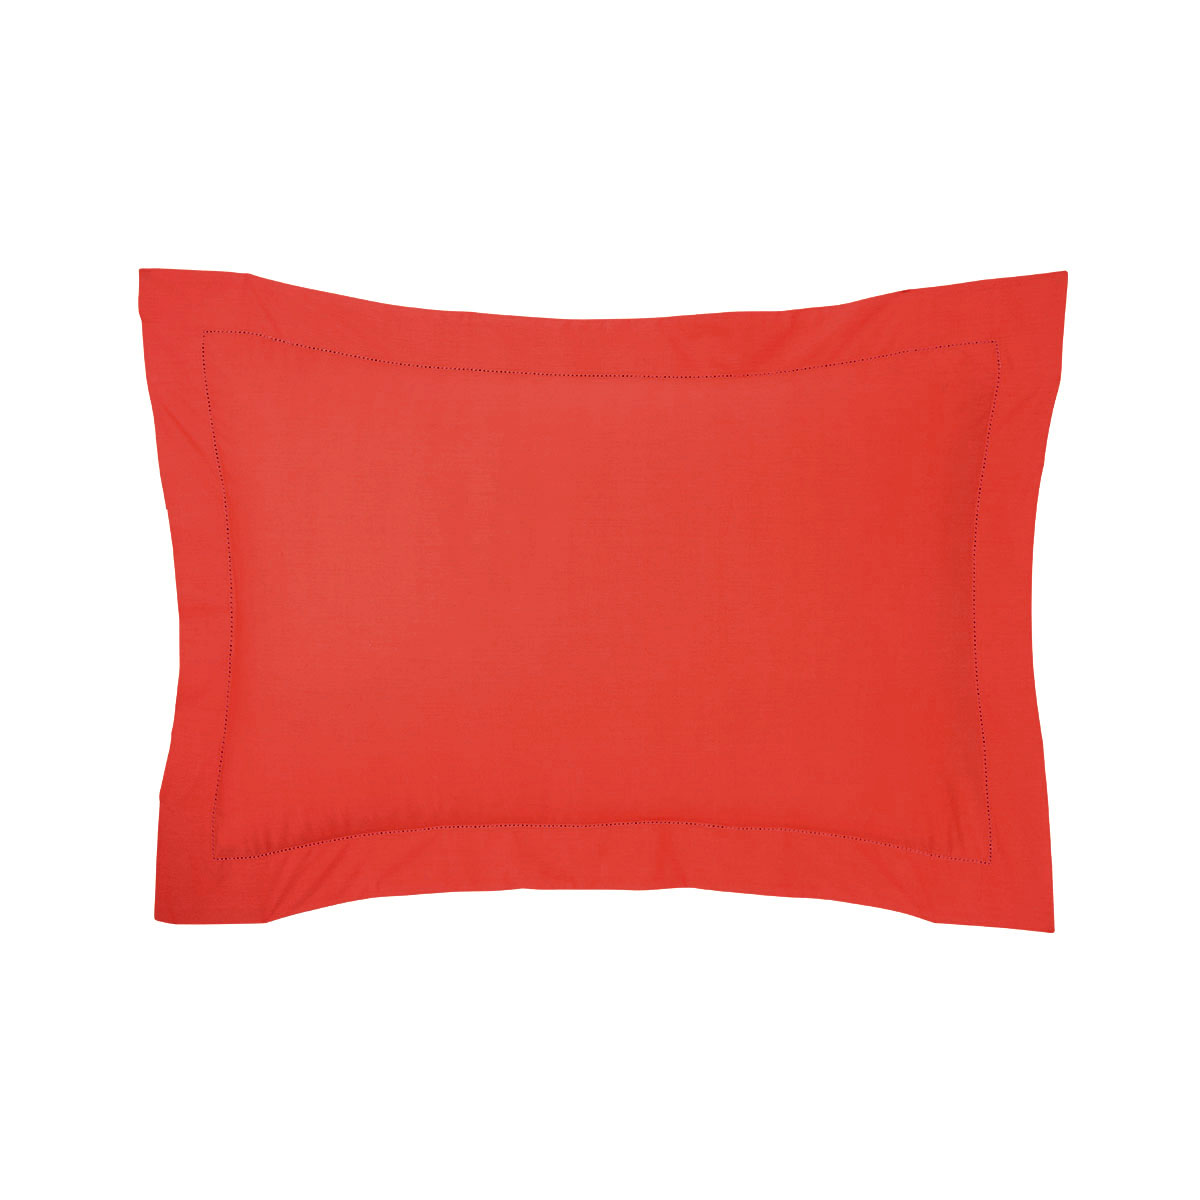 Taie d'oreiller percale Rouge 50 x 75 cm